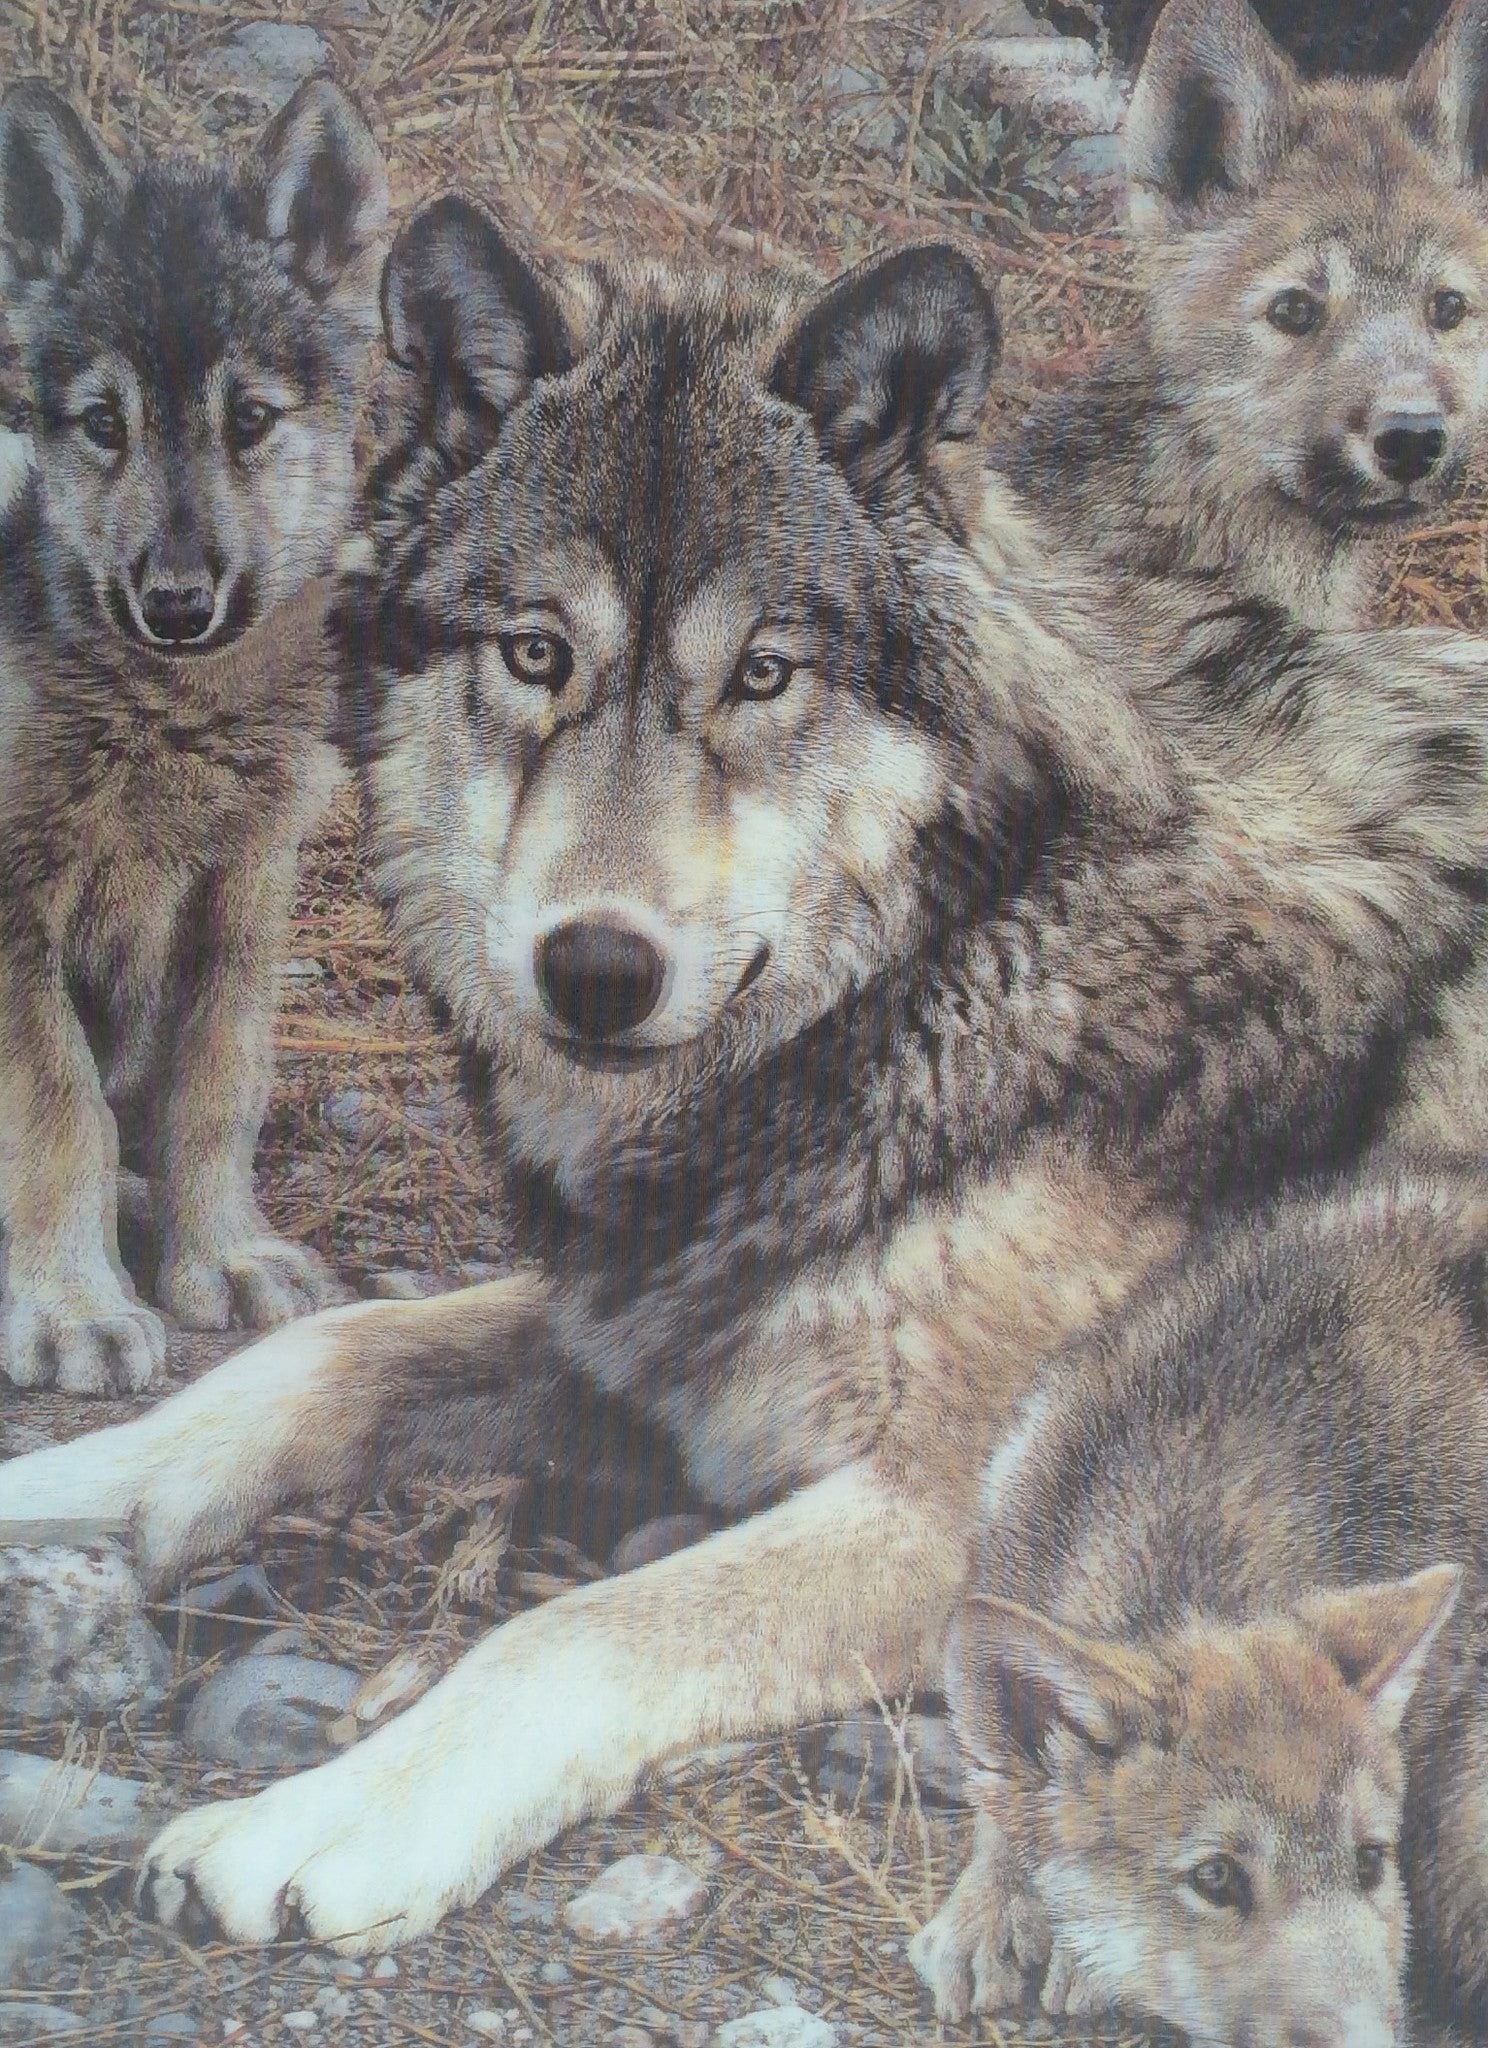 wolf pups mother wolves 3d moon face pup faces 3dddpictures den leaping momma